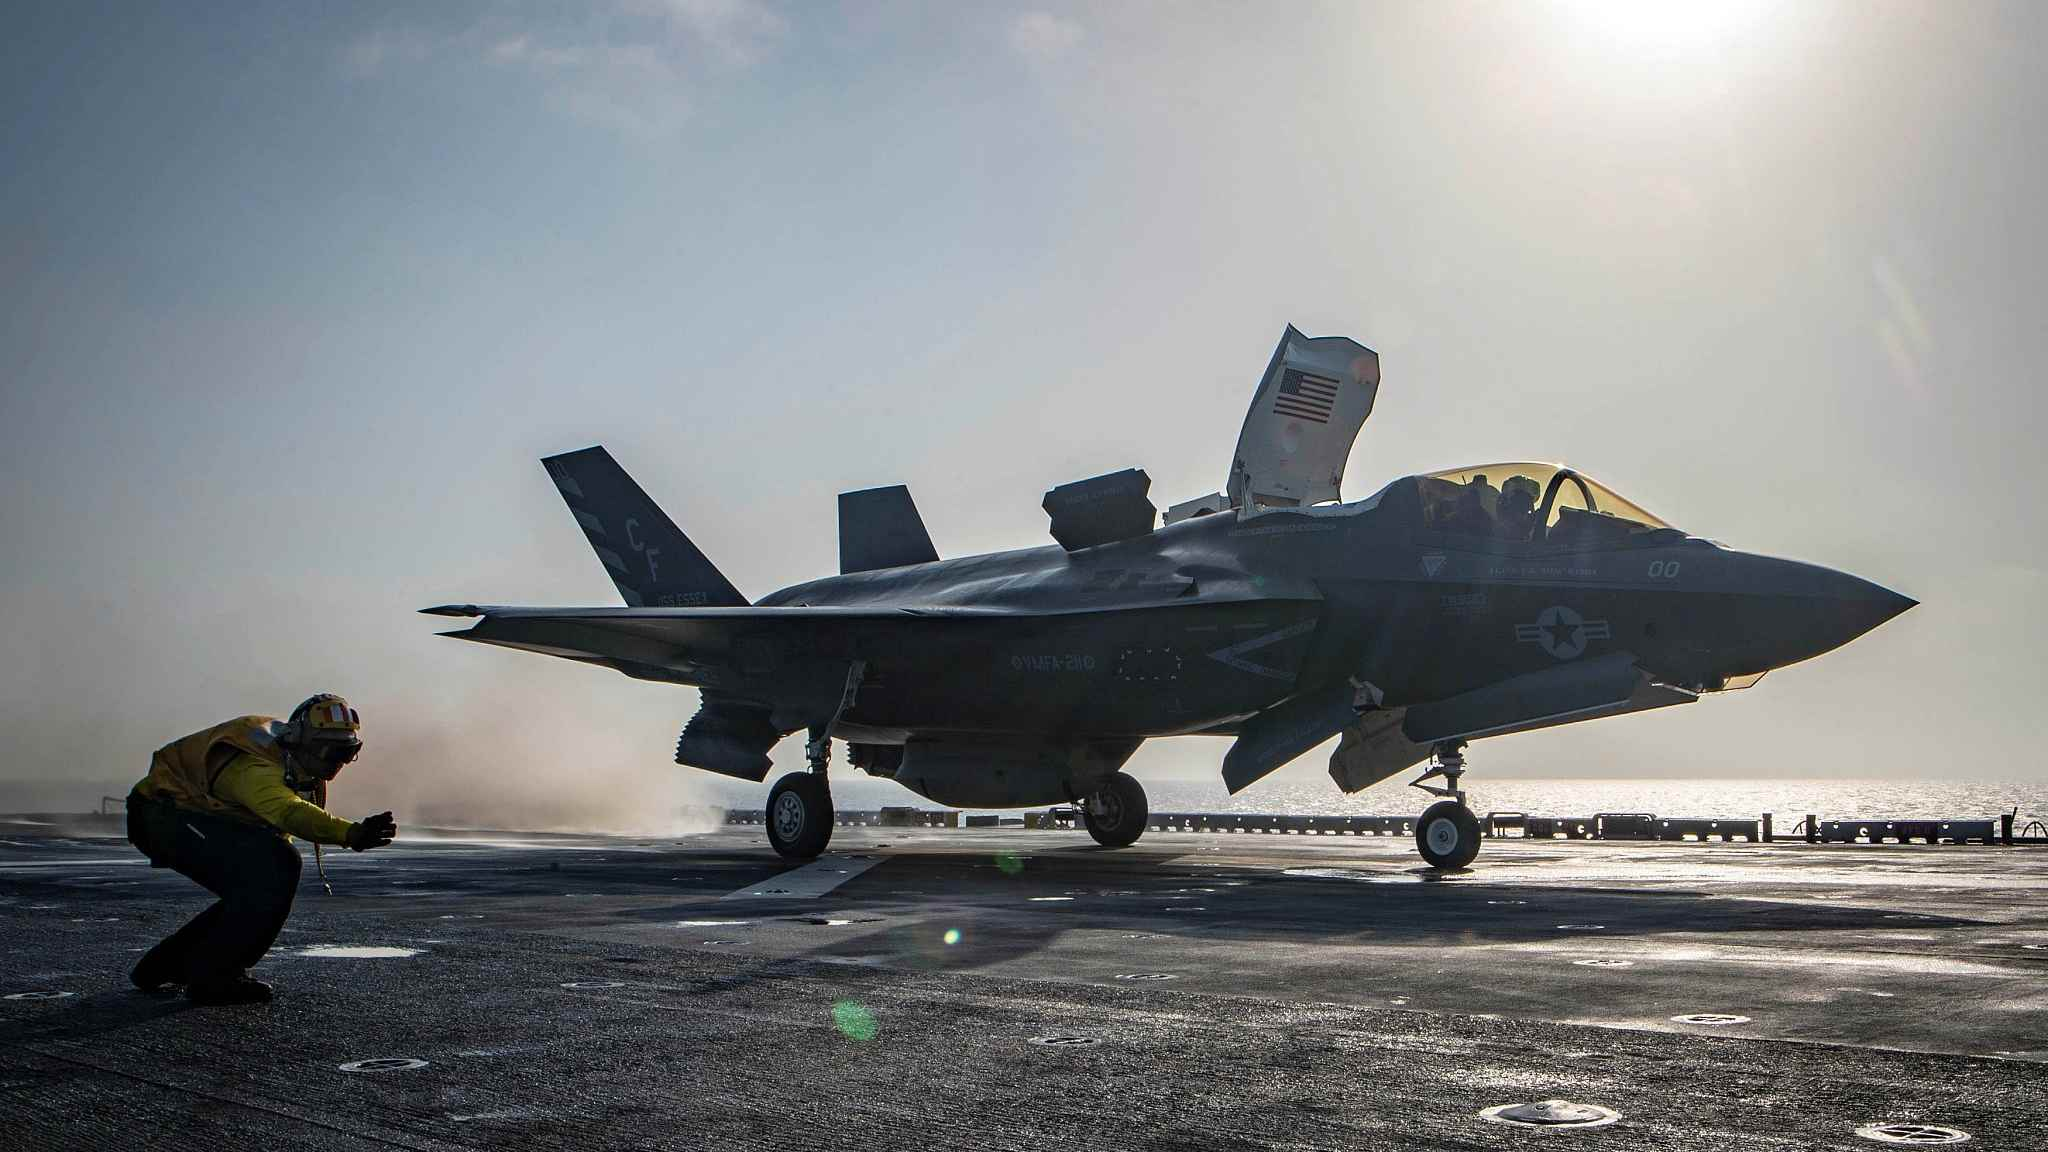 Turkey to seek alternatives if fails to solve F-35 jet problem with US: minister